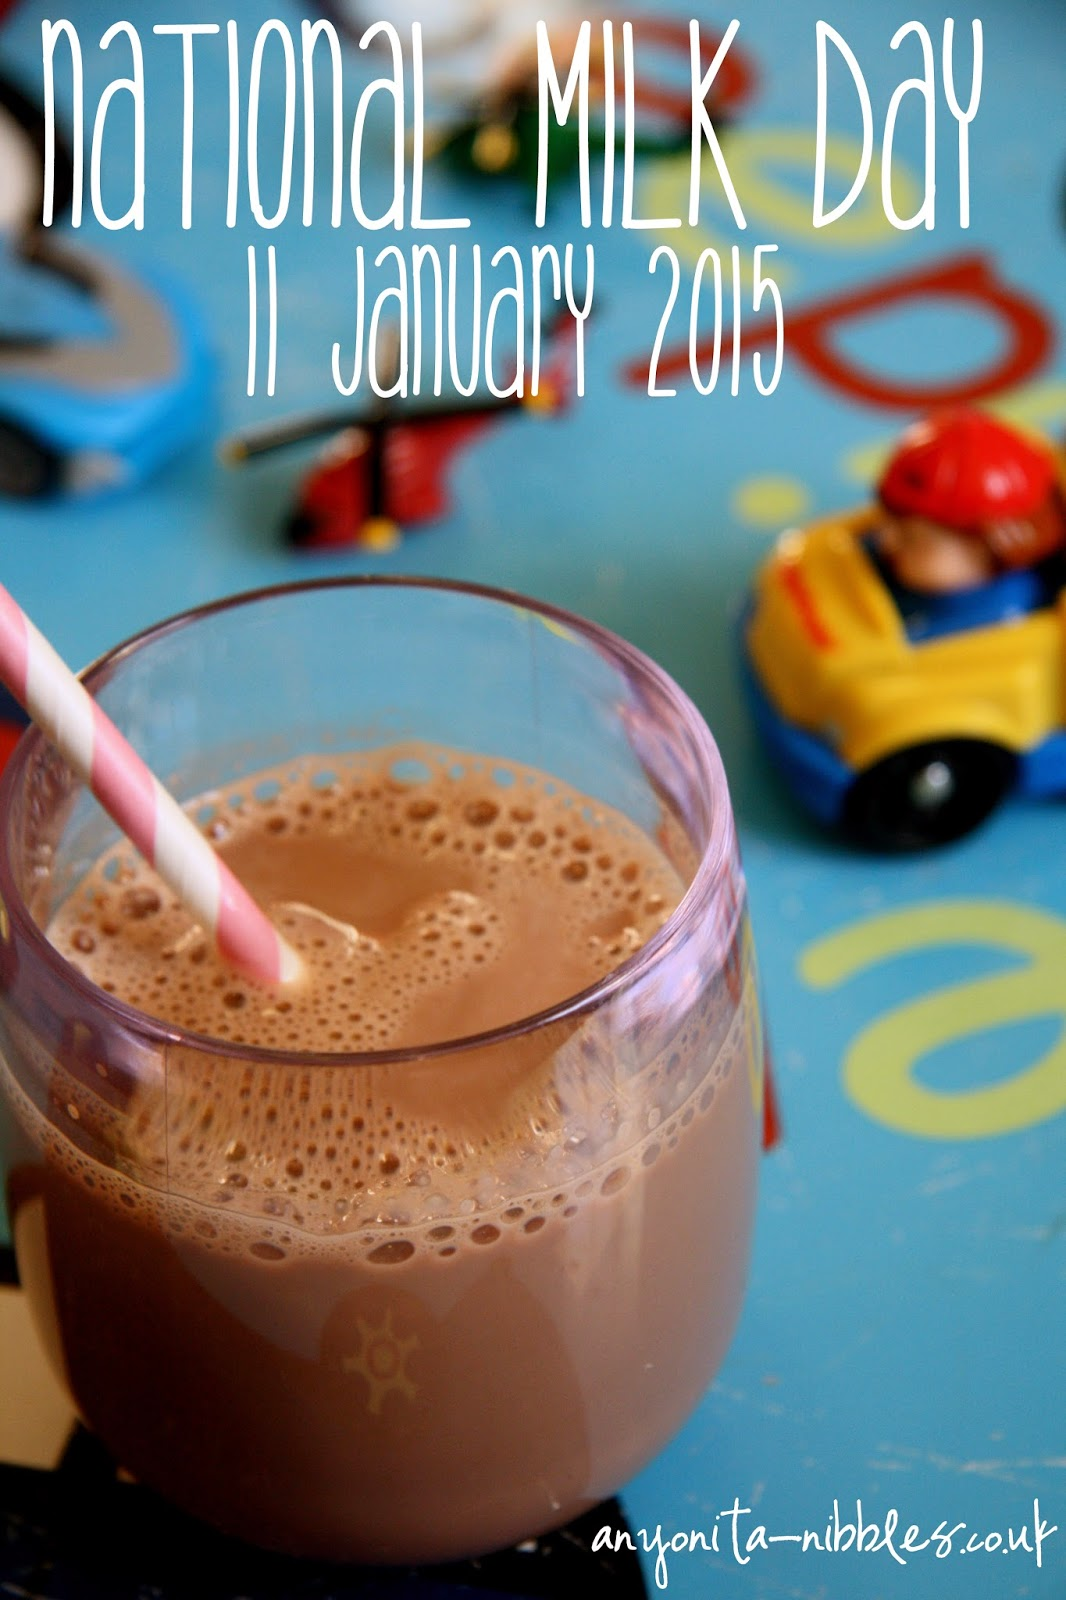 11 January 2105, National Milk Day from Anyonita-nibbles.co.uk